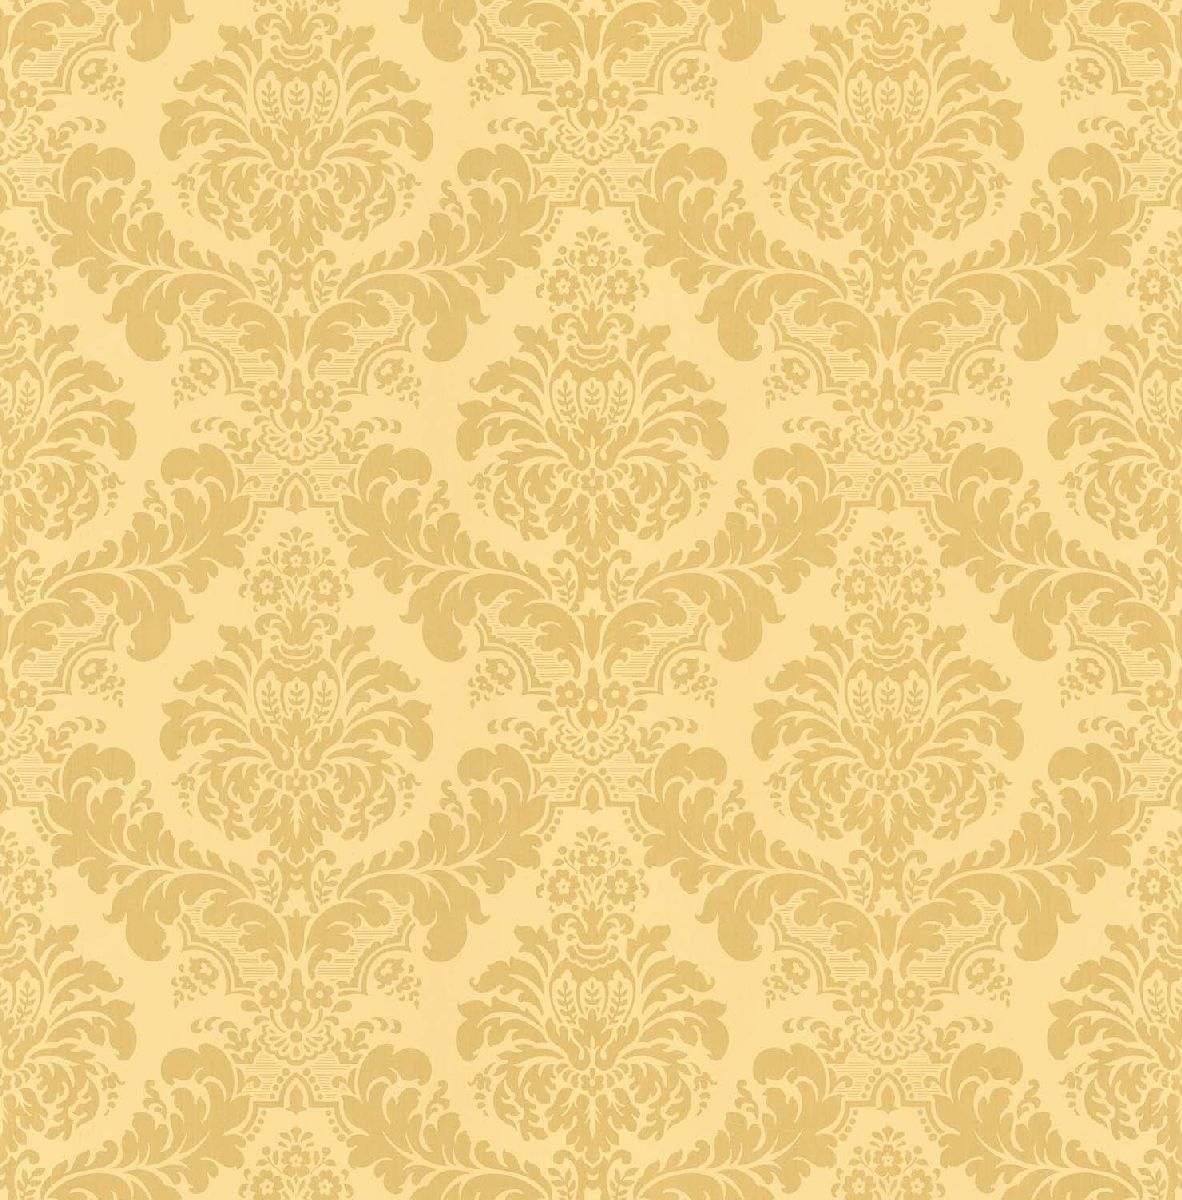 Decowunder wallpapers vinyl wallpaper baroque pattern gold 298108 1182x1200